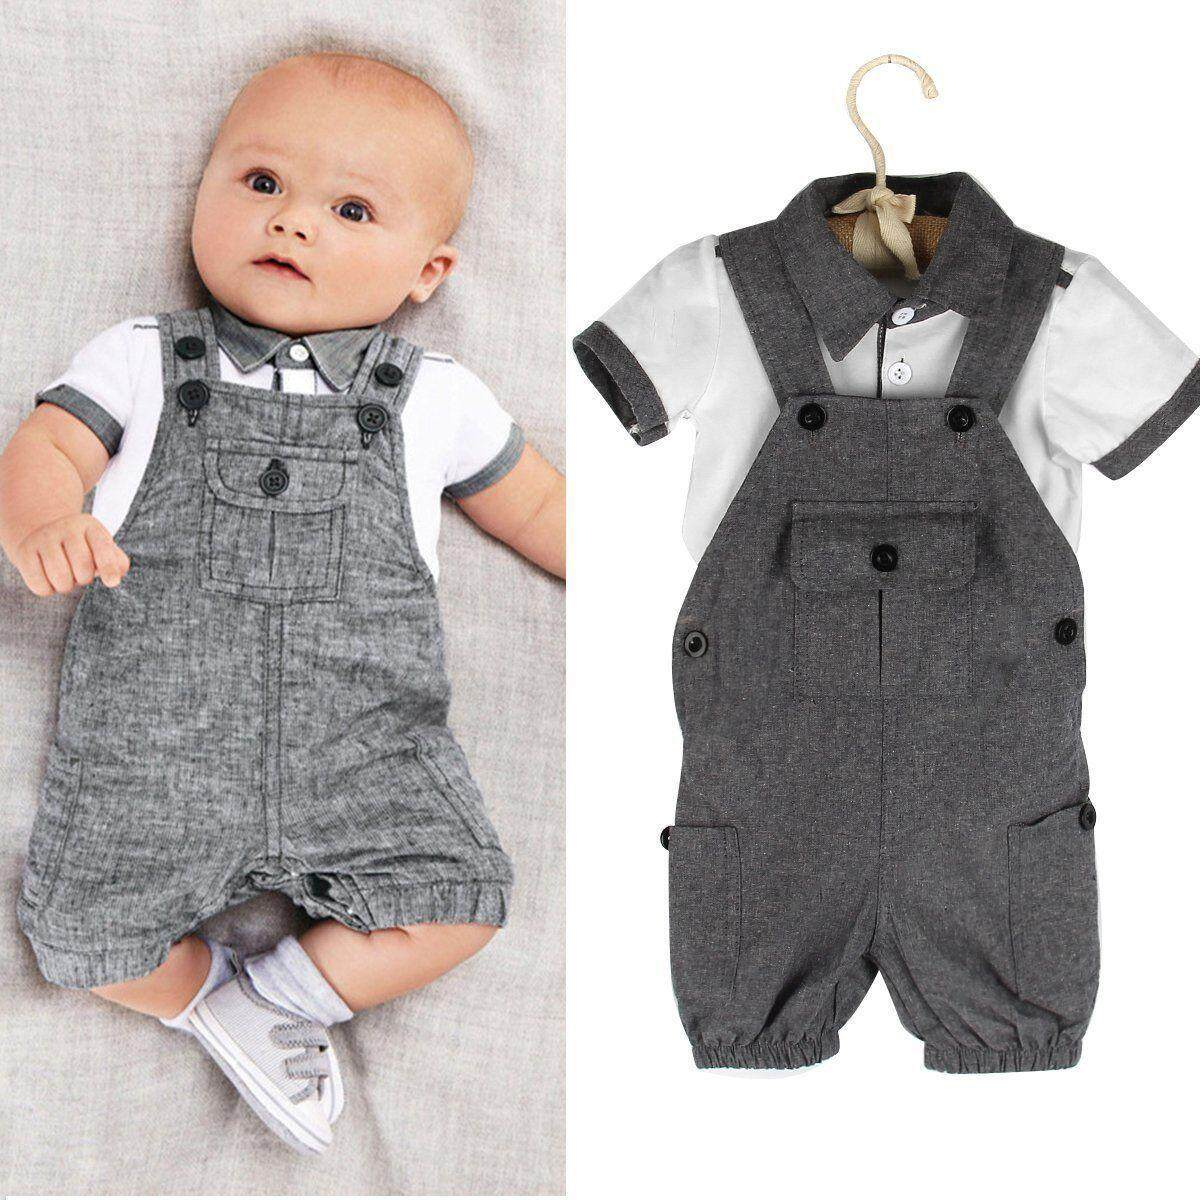 e0d0a2934 2pcs Toddler Infant Newborn Kids Baby Boy Clothes T-shirt Tops+Pants  Outfits Set